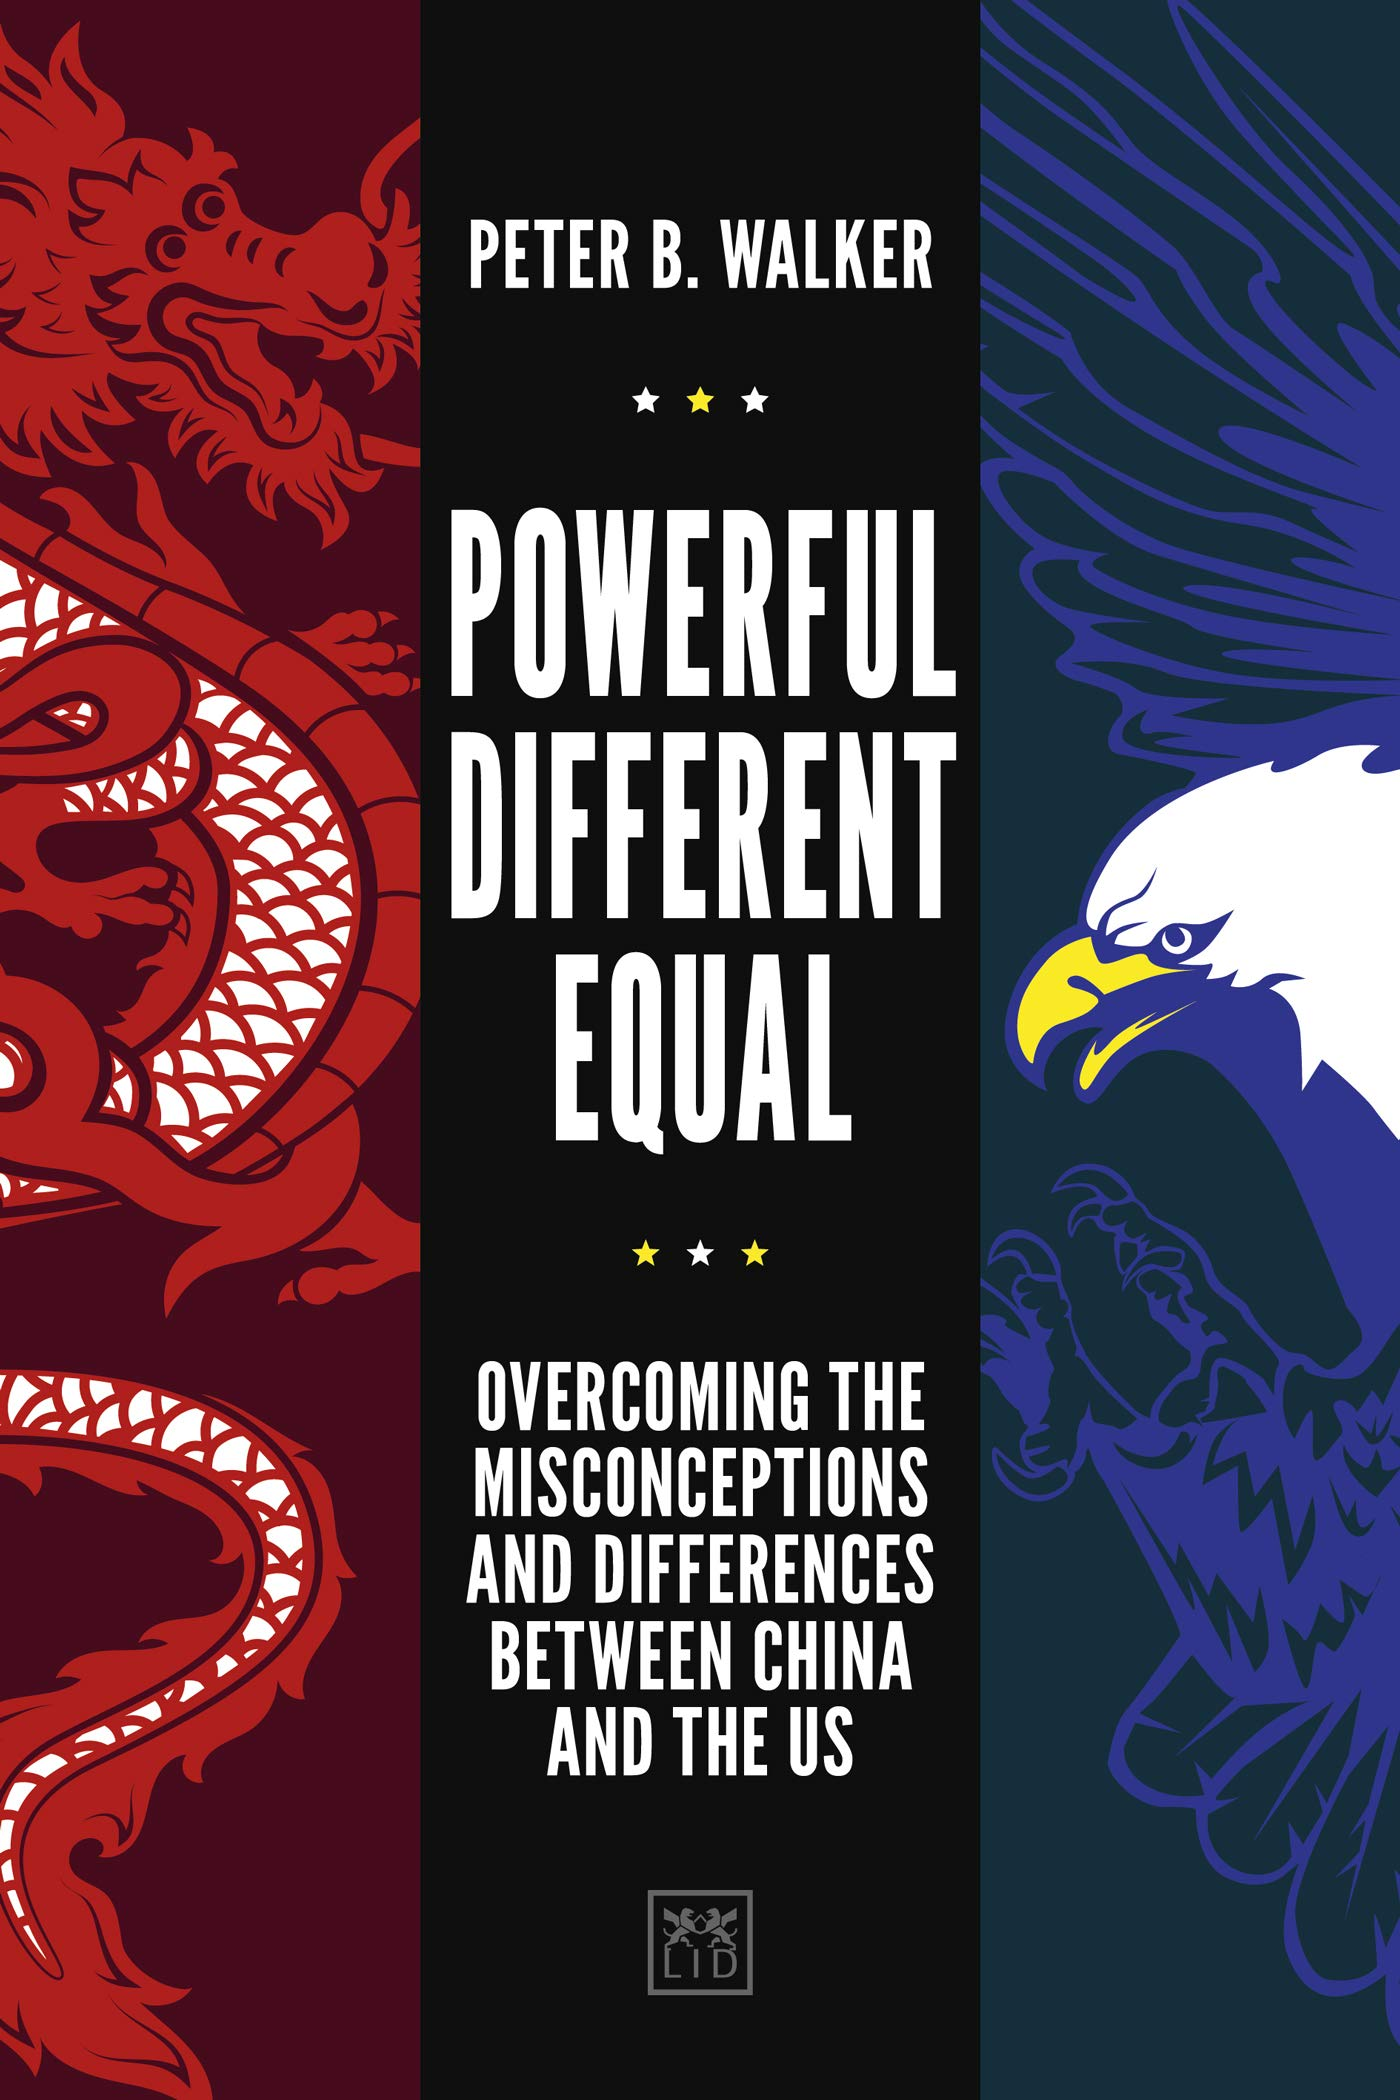 Image OfPowerful, Different, Equal: Overcoming The Misconceptions And Differences Between China And The US